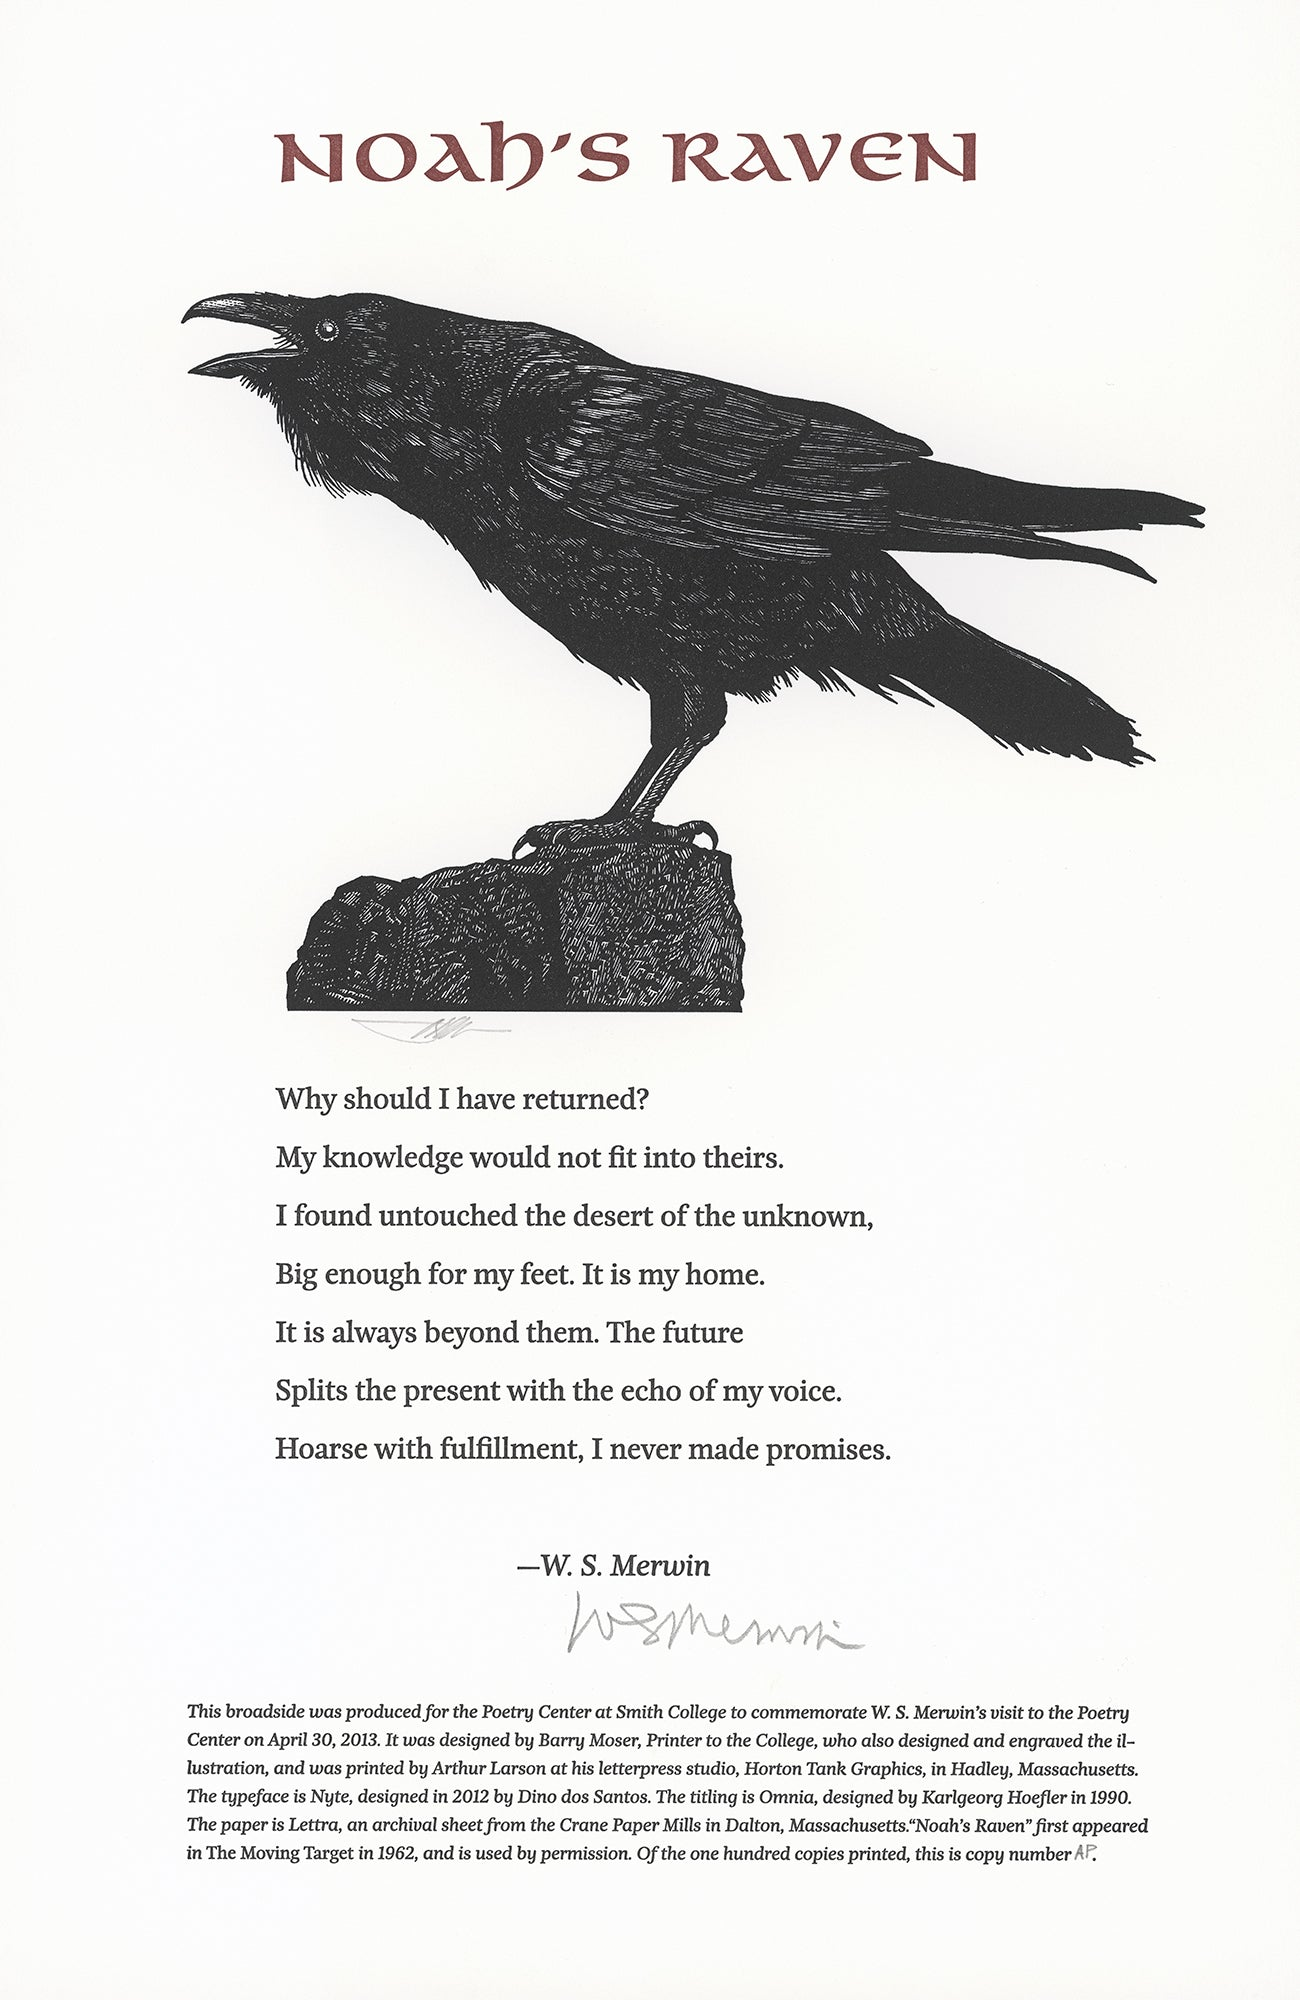 W. S. Merwin Barry Moser broadside print poem poetry center bird raven crow scma smith college museum of art